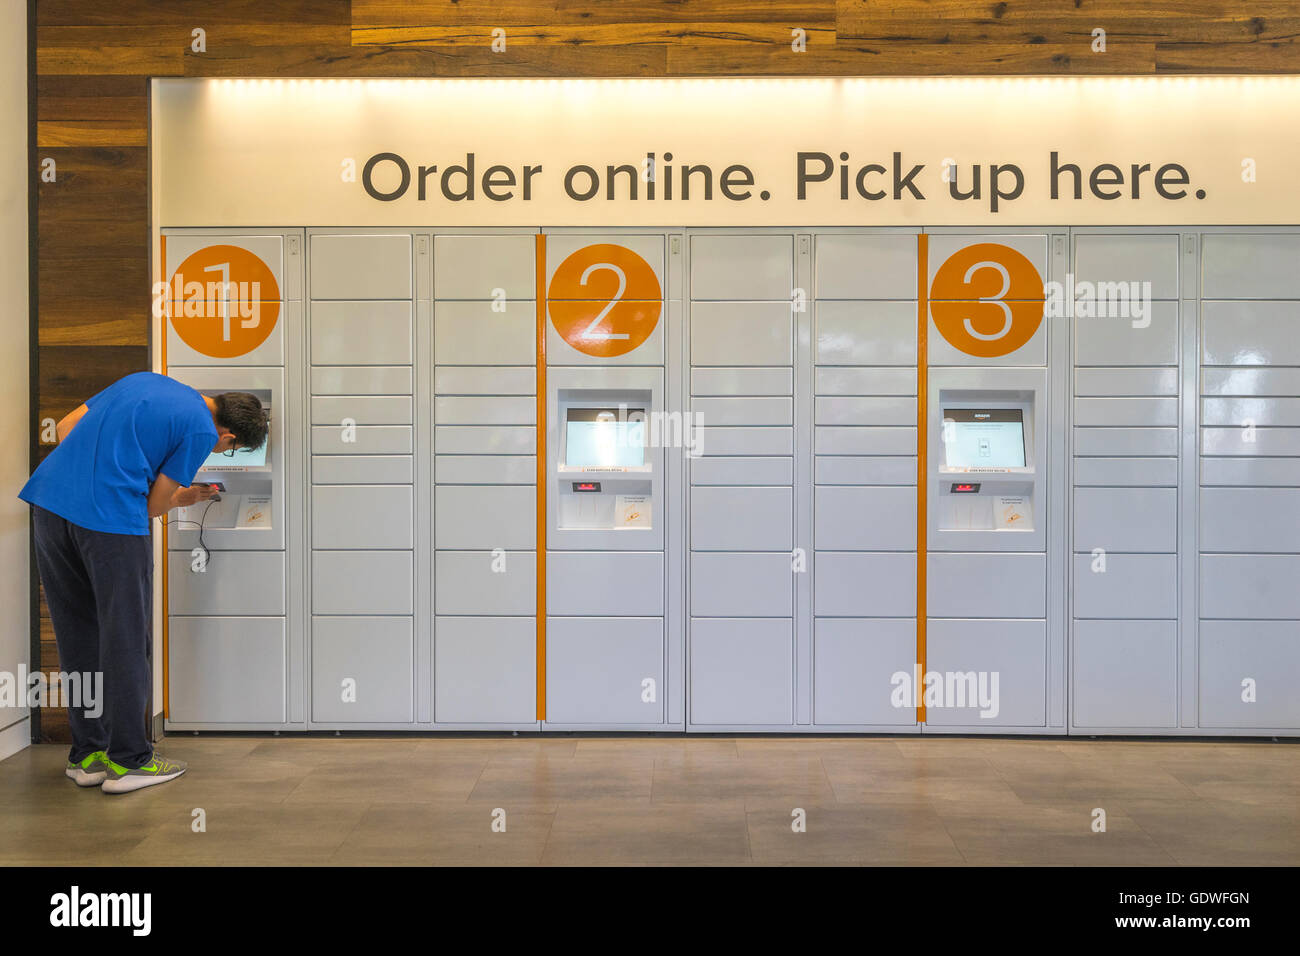 Man scanning his smartphone at an ecommerce locker to get a package he ordered online - Stock Image